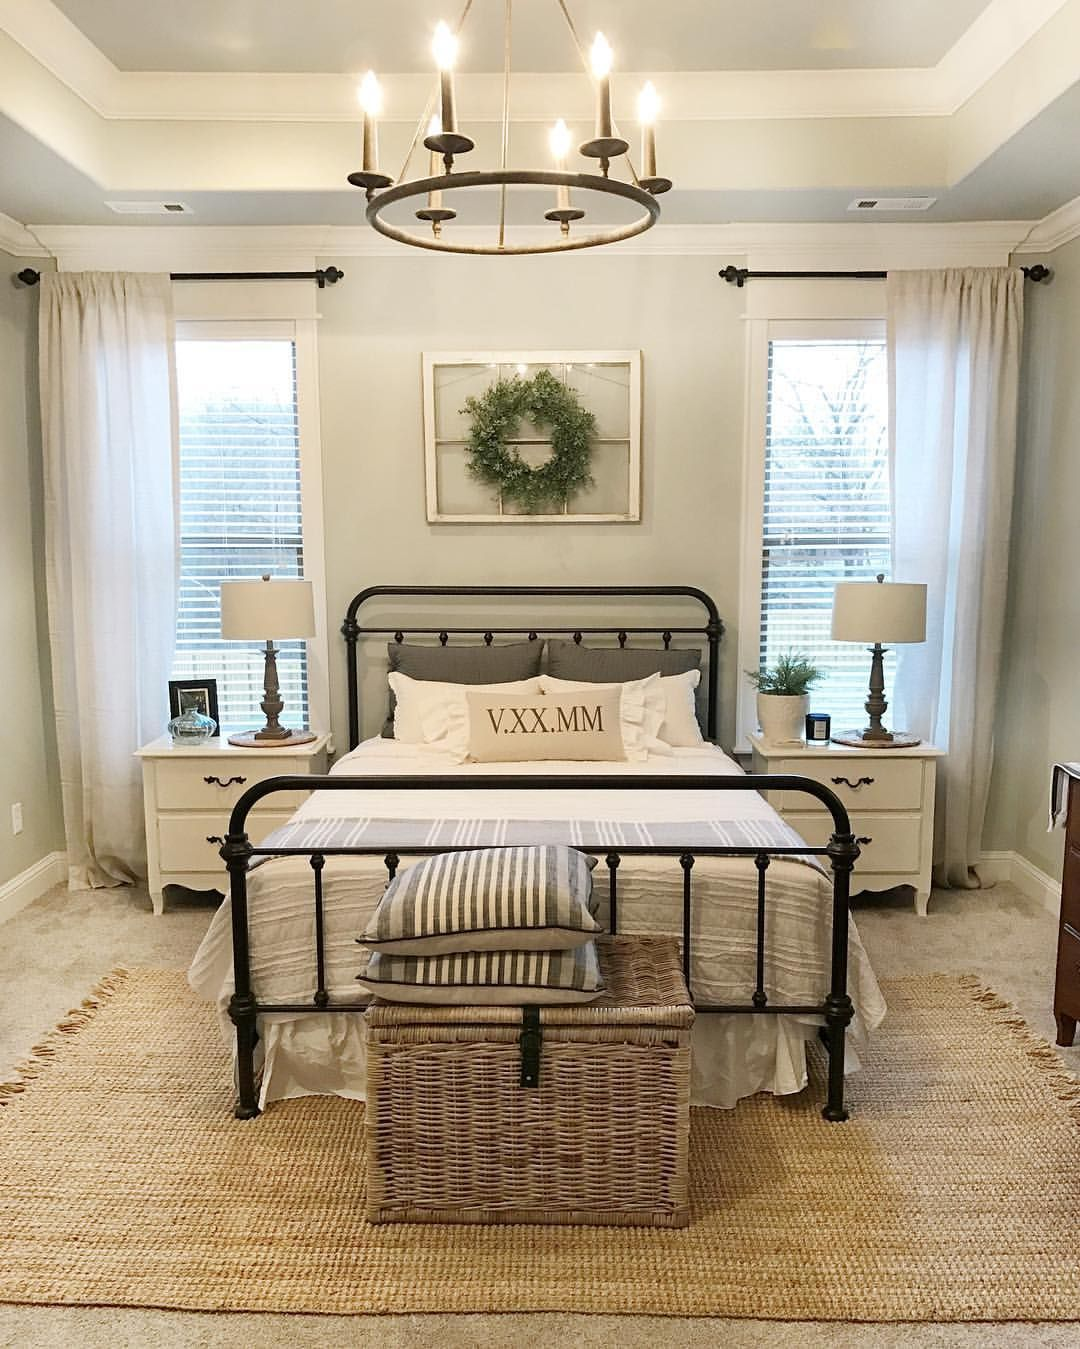 7 226 Likes 161 Comments Alicia Our Vintage Nest Ourvintagenest On Instagram Hey Farmhouse Style Master Bedroom Remodel Bedroom Farmhouse Bedroom Decor